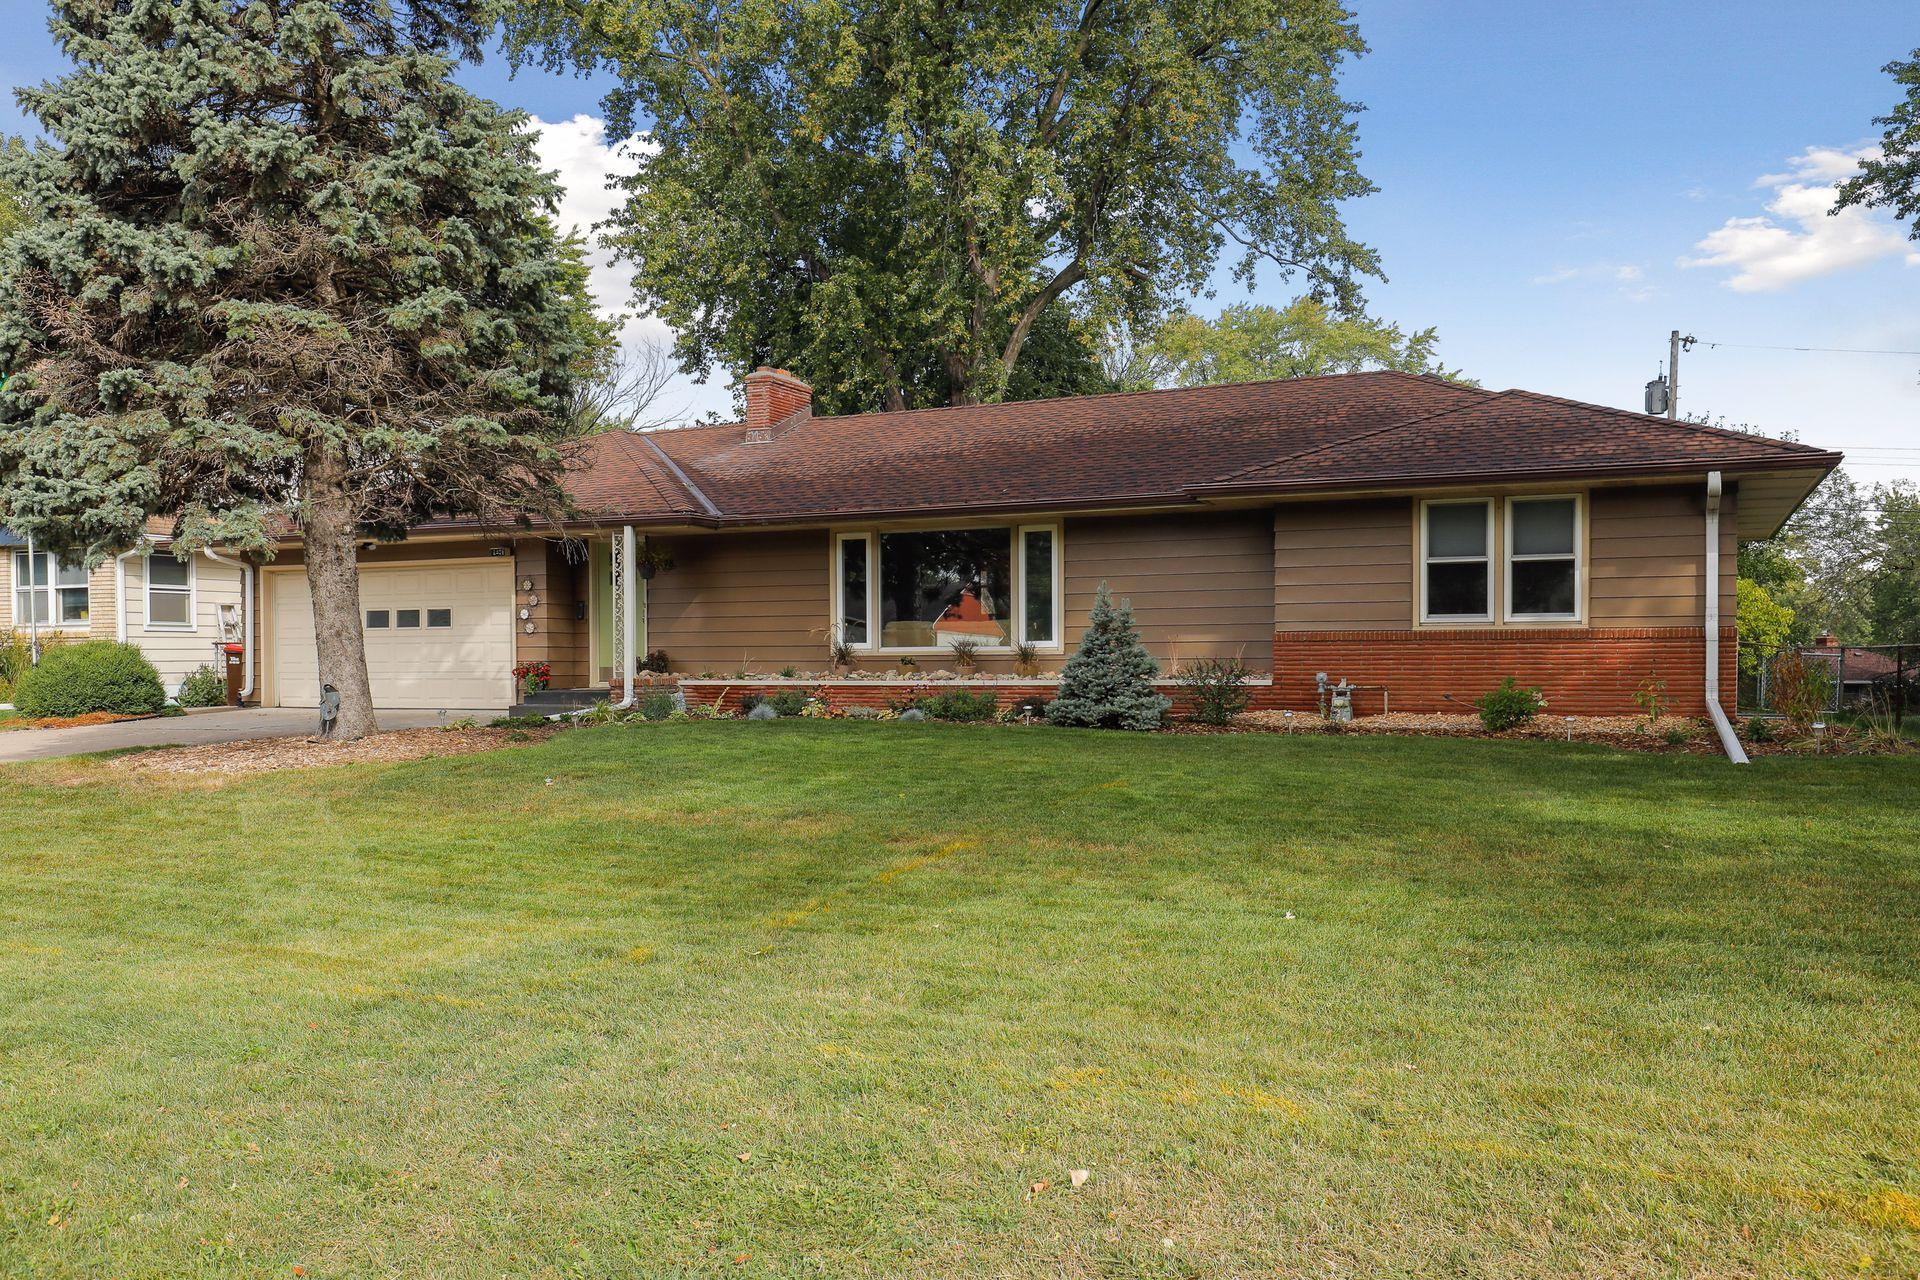 2408 Isalona Lane Property Photo - South Saint Paul, MN real estate listing